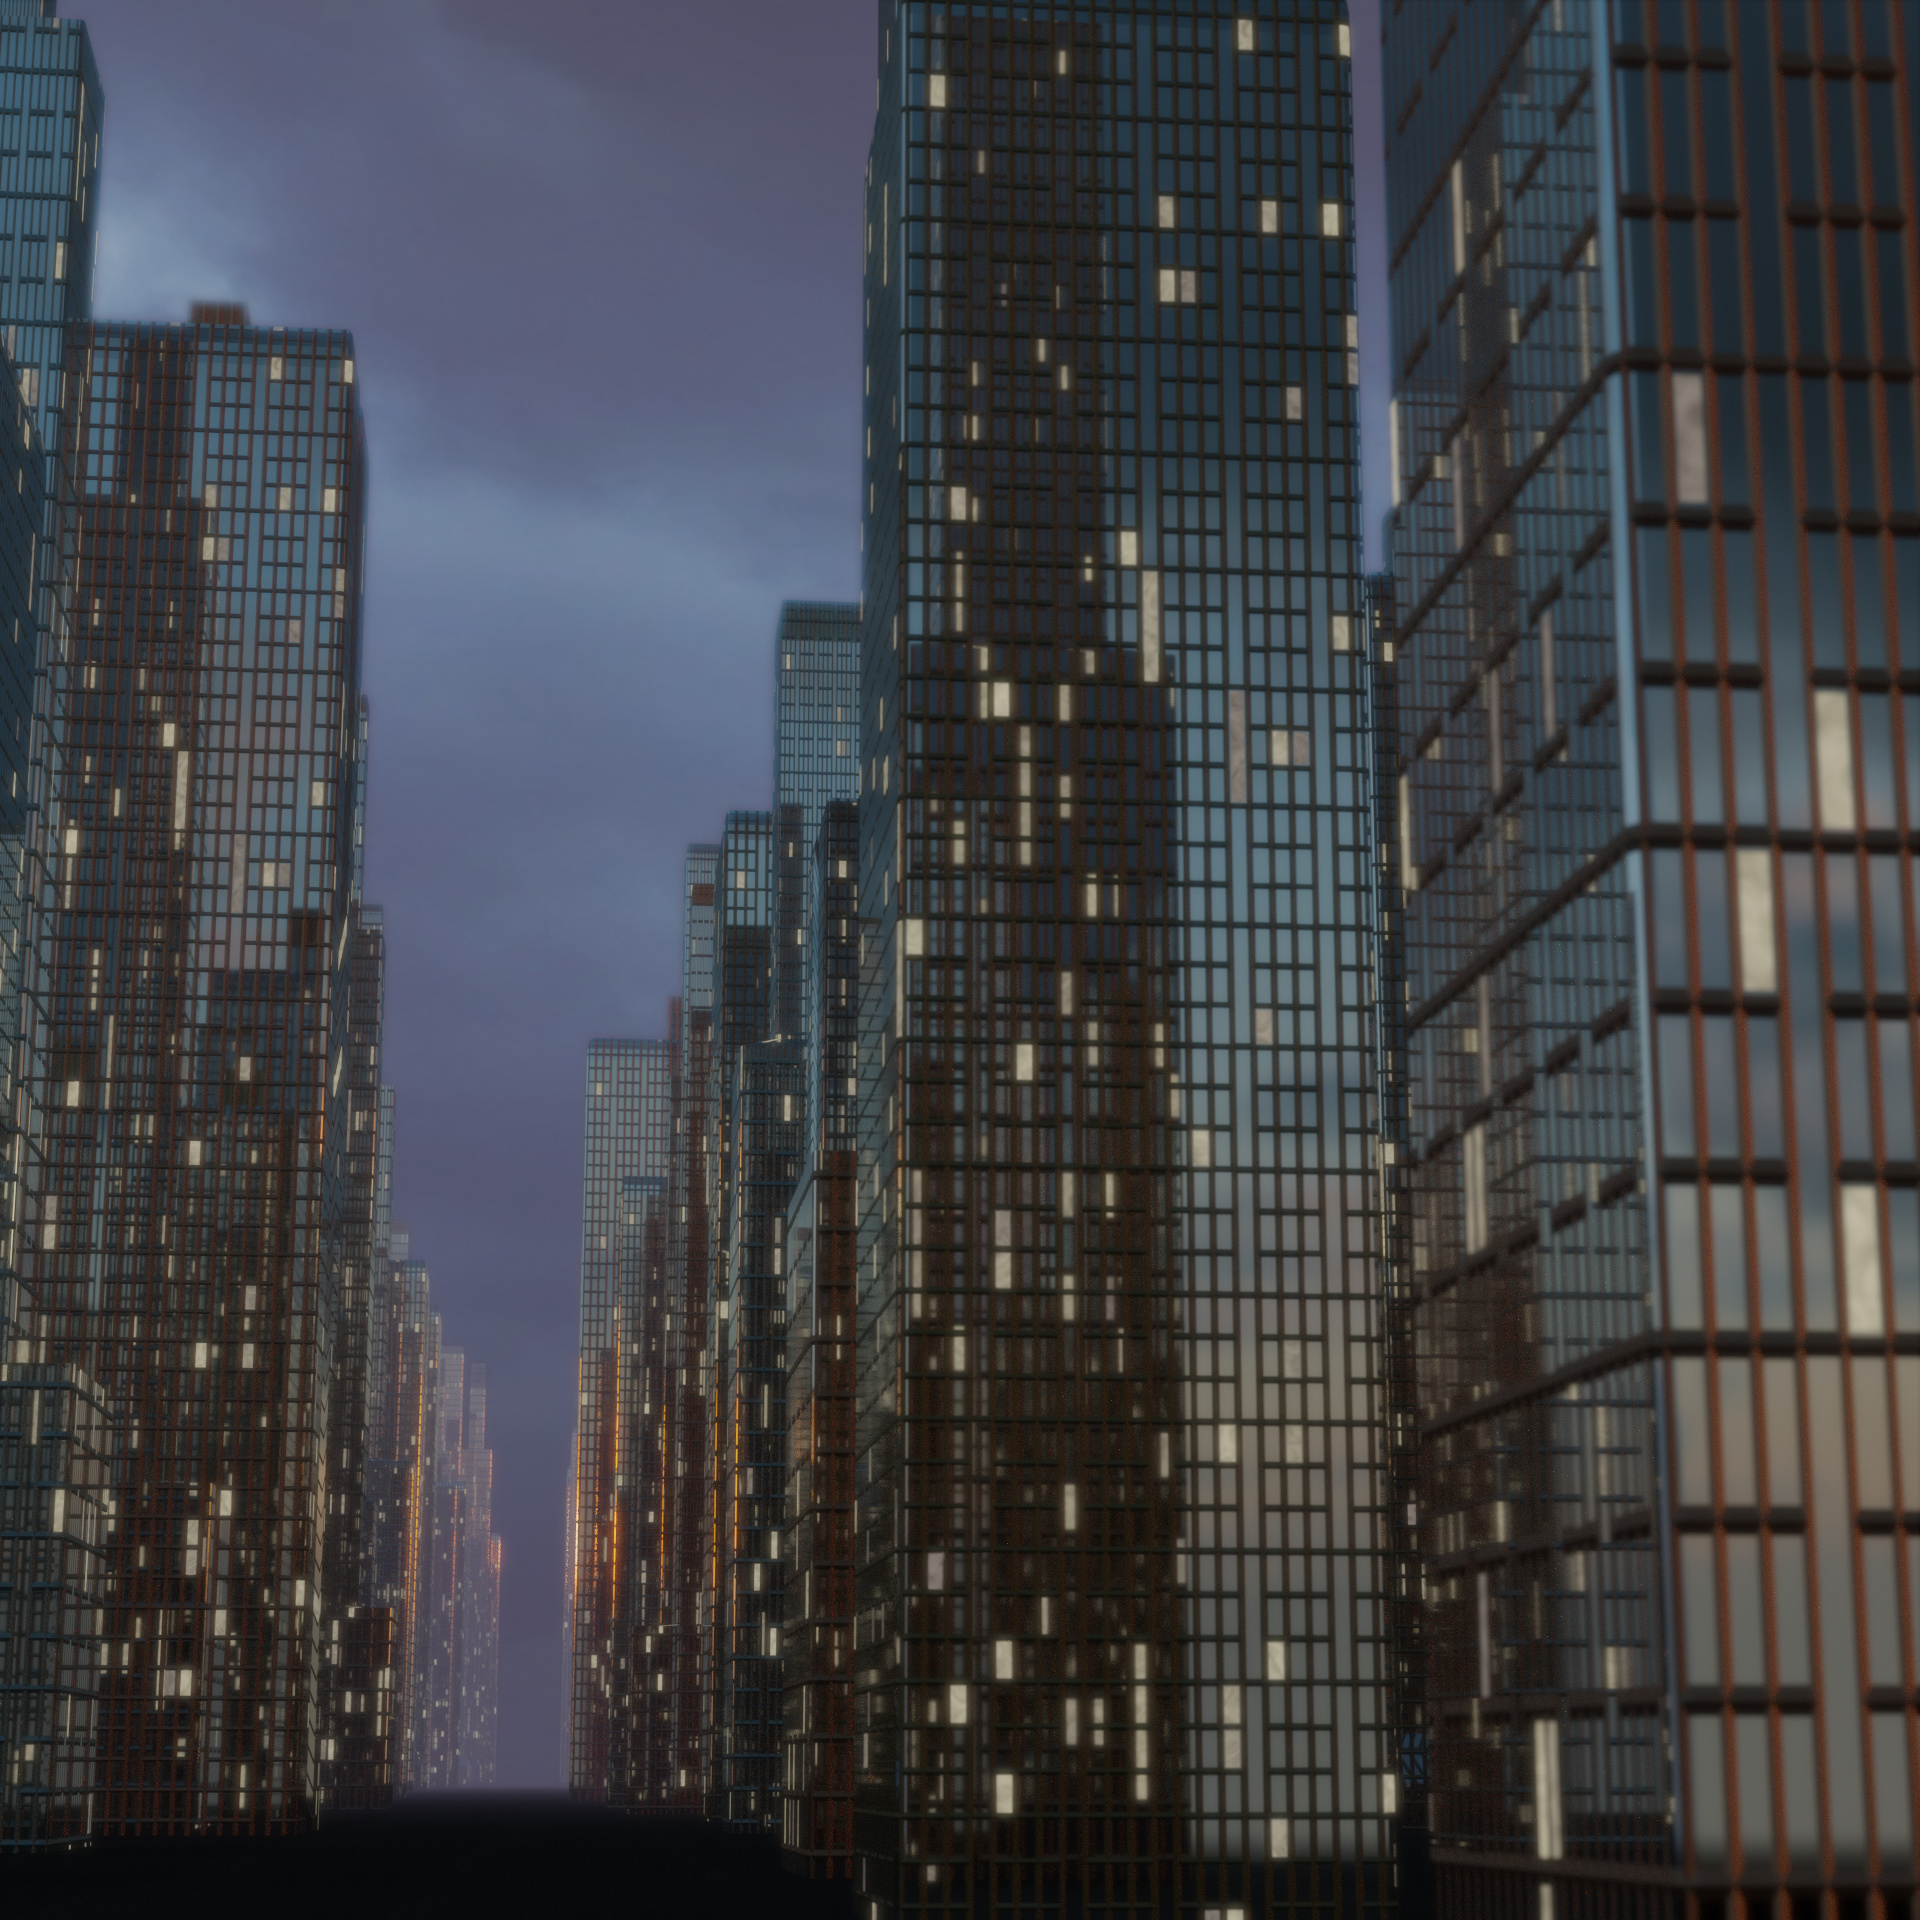 Some Skyscraper Texture For Blender 2 8x Cycles Materials And Textures Blender Artists Community